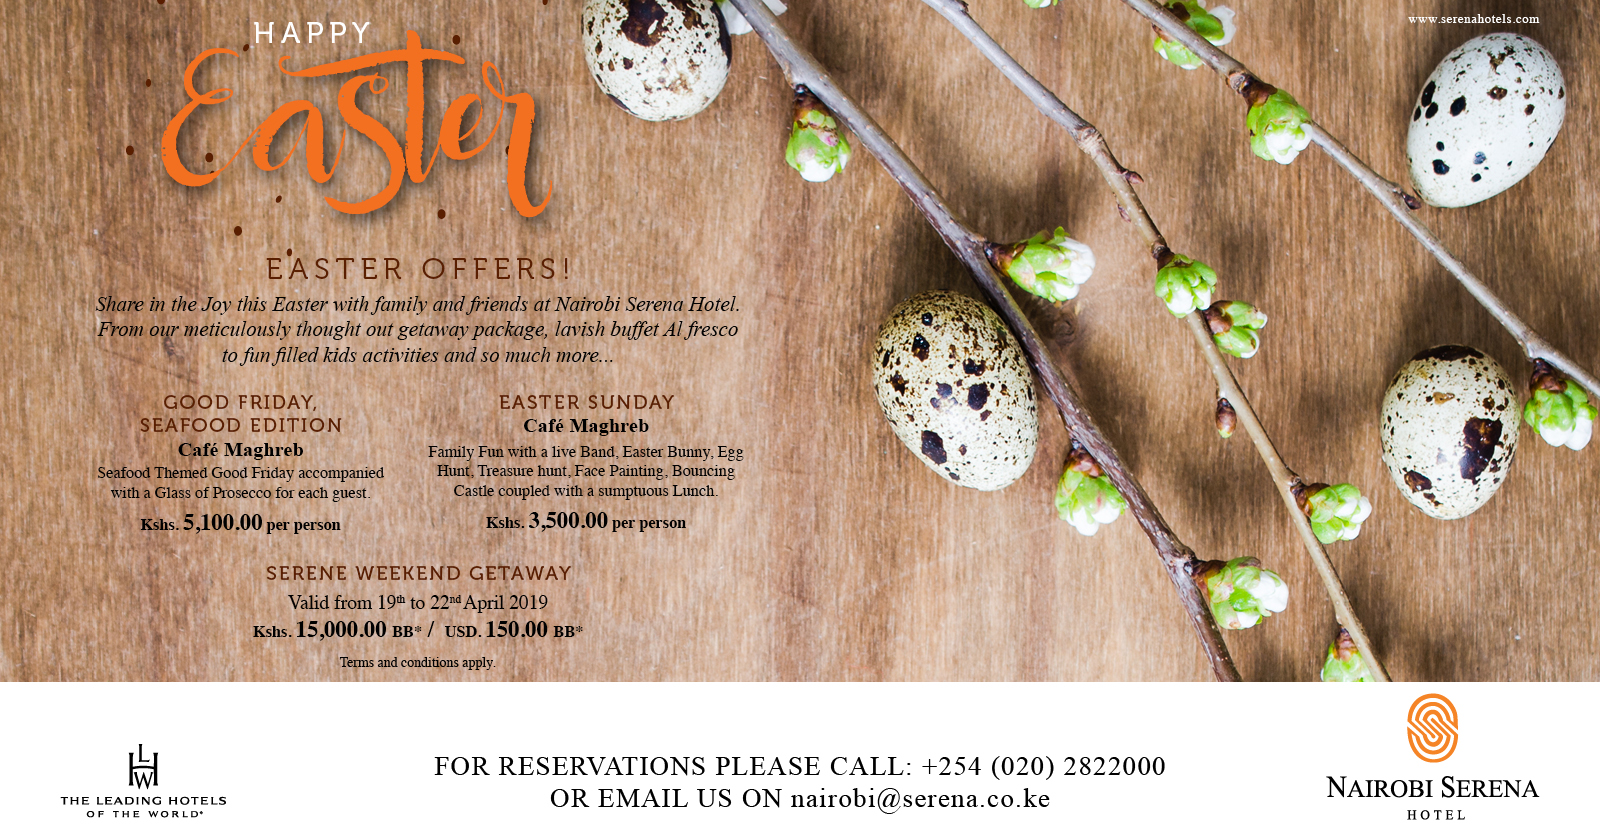 The Nairobi Serena is pulling out all stops for the Easter celebrations ...